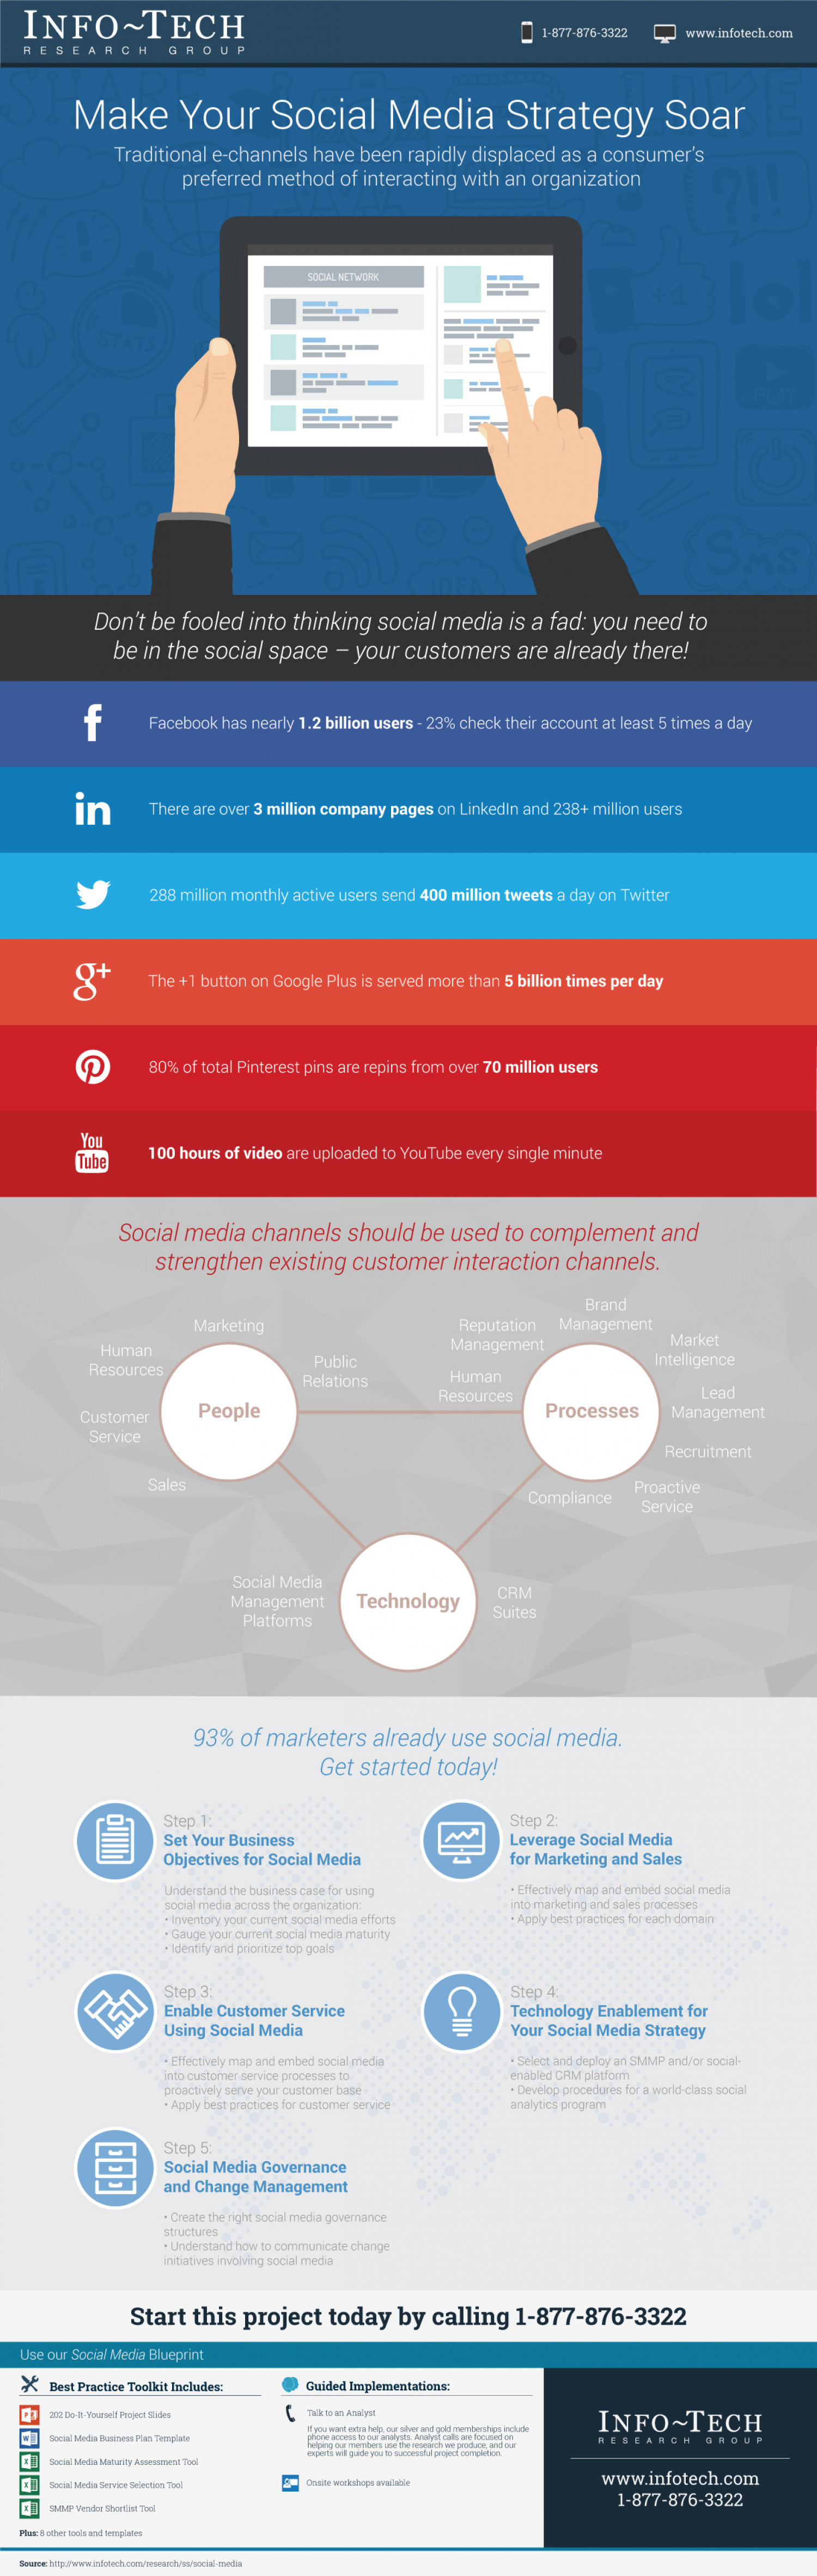 Make Your Social Media Strategy Soar Infographic